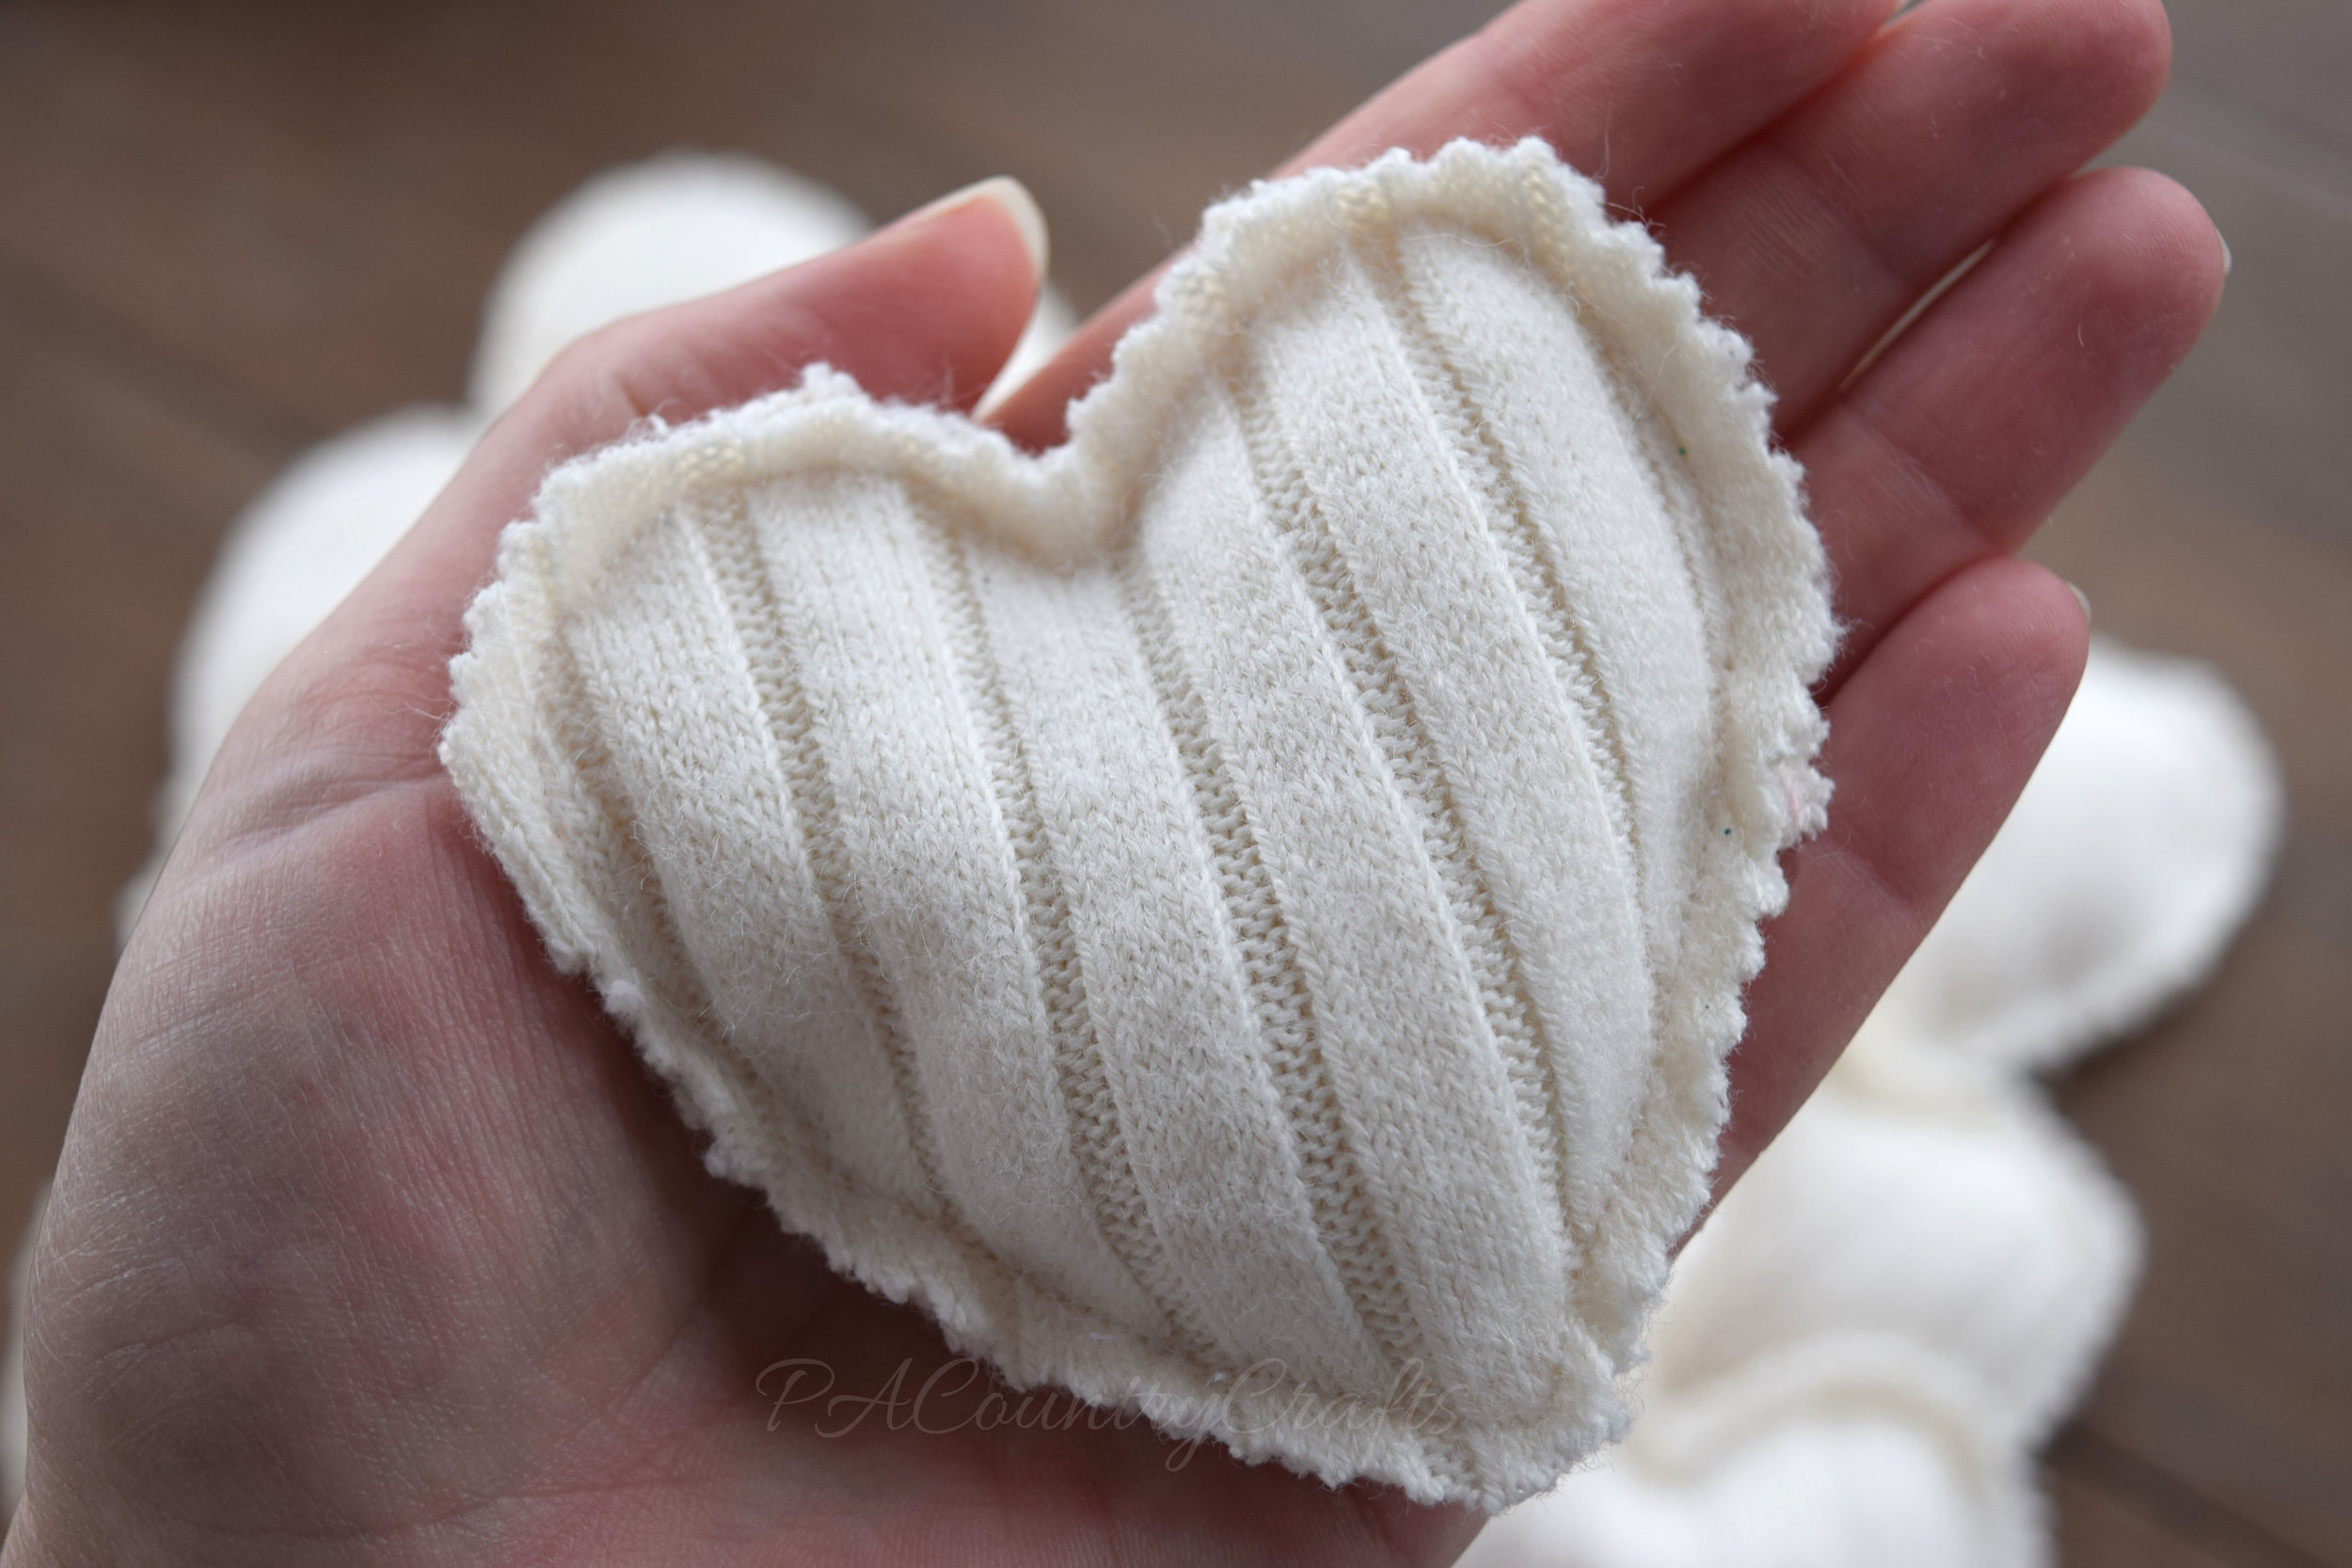 Beautiful, soft handwarmers made from sweaters